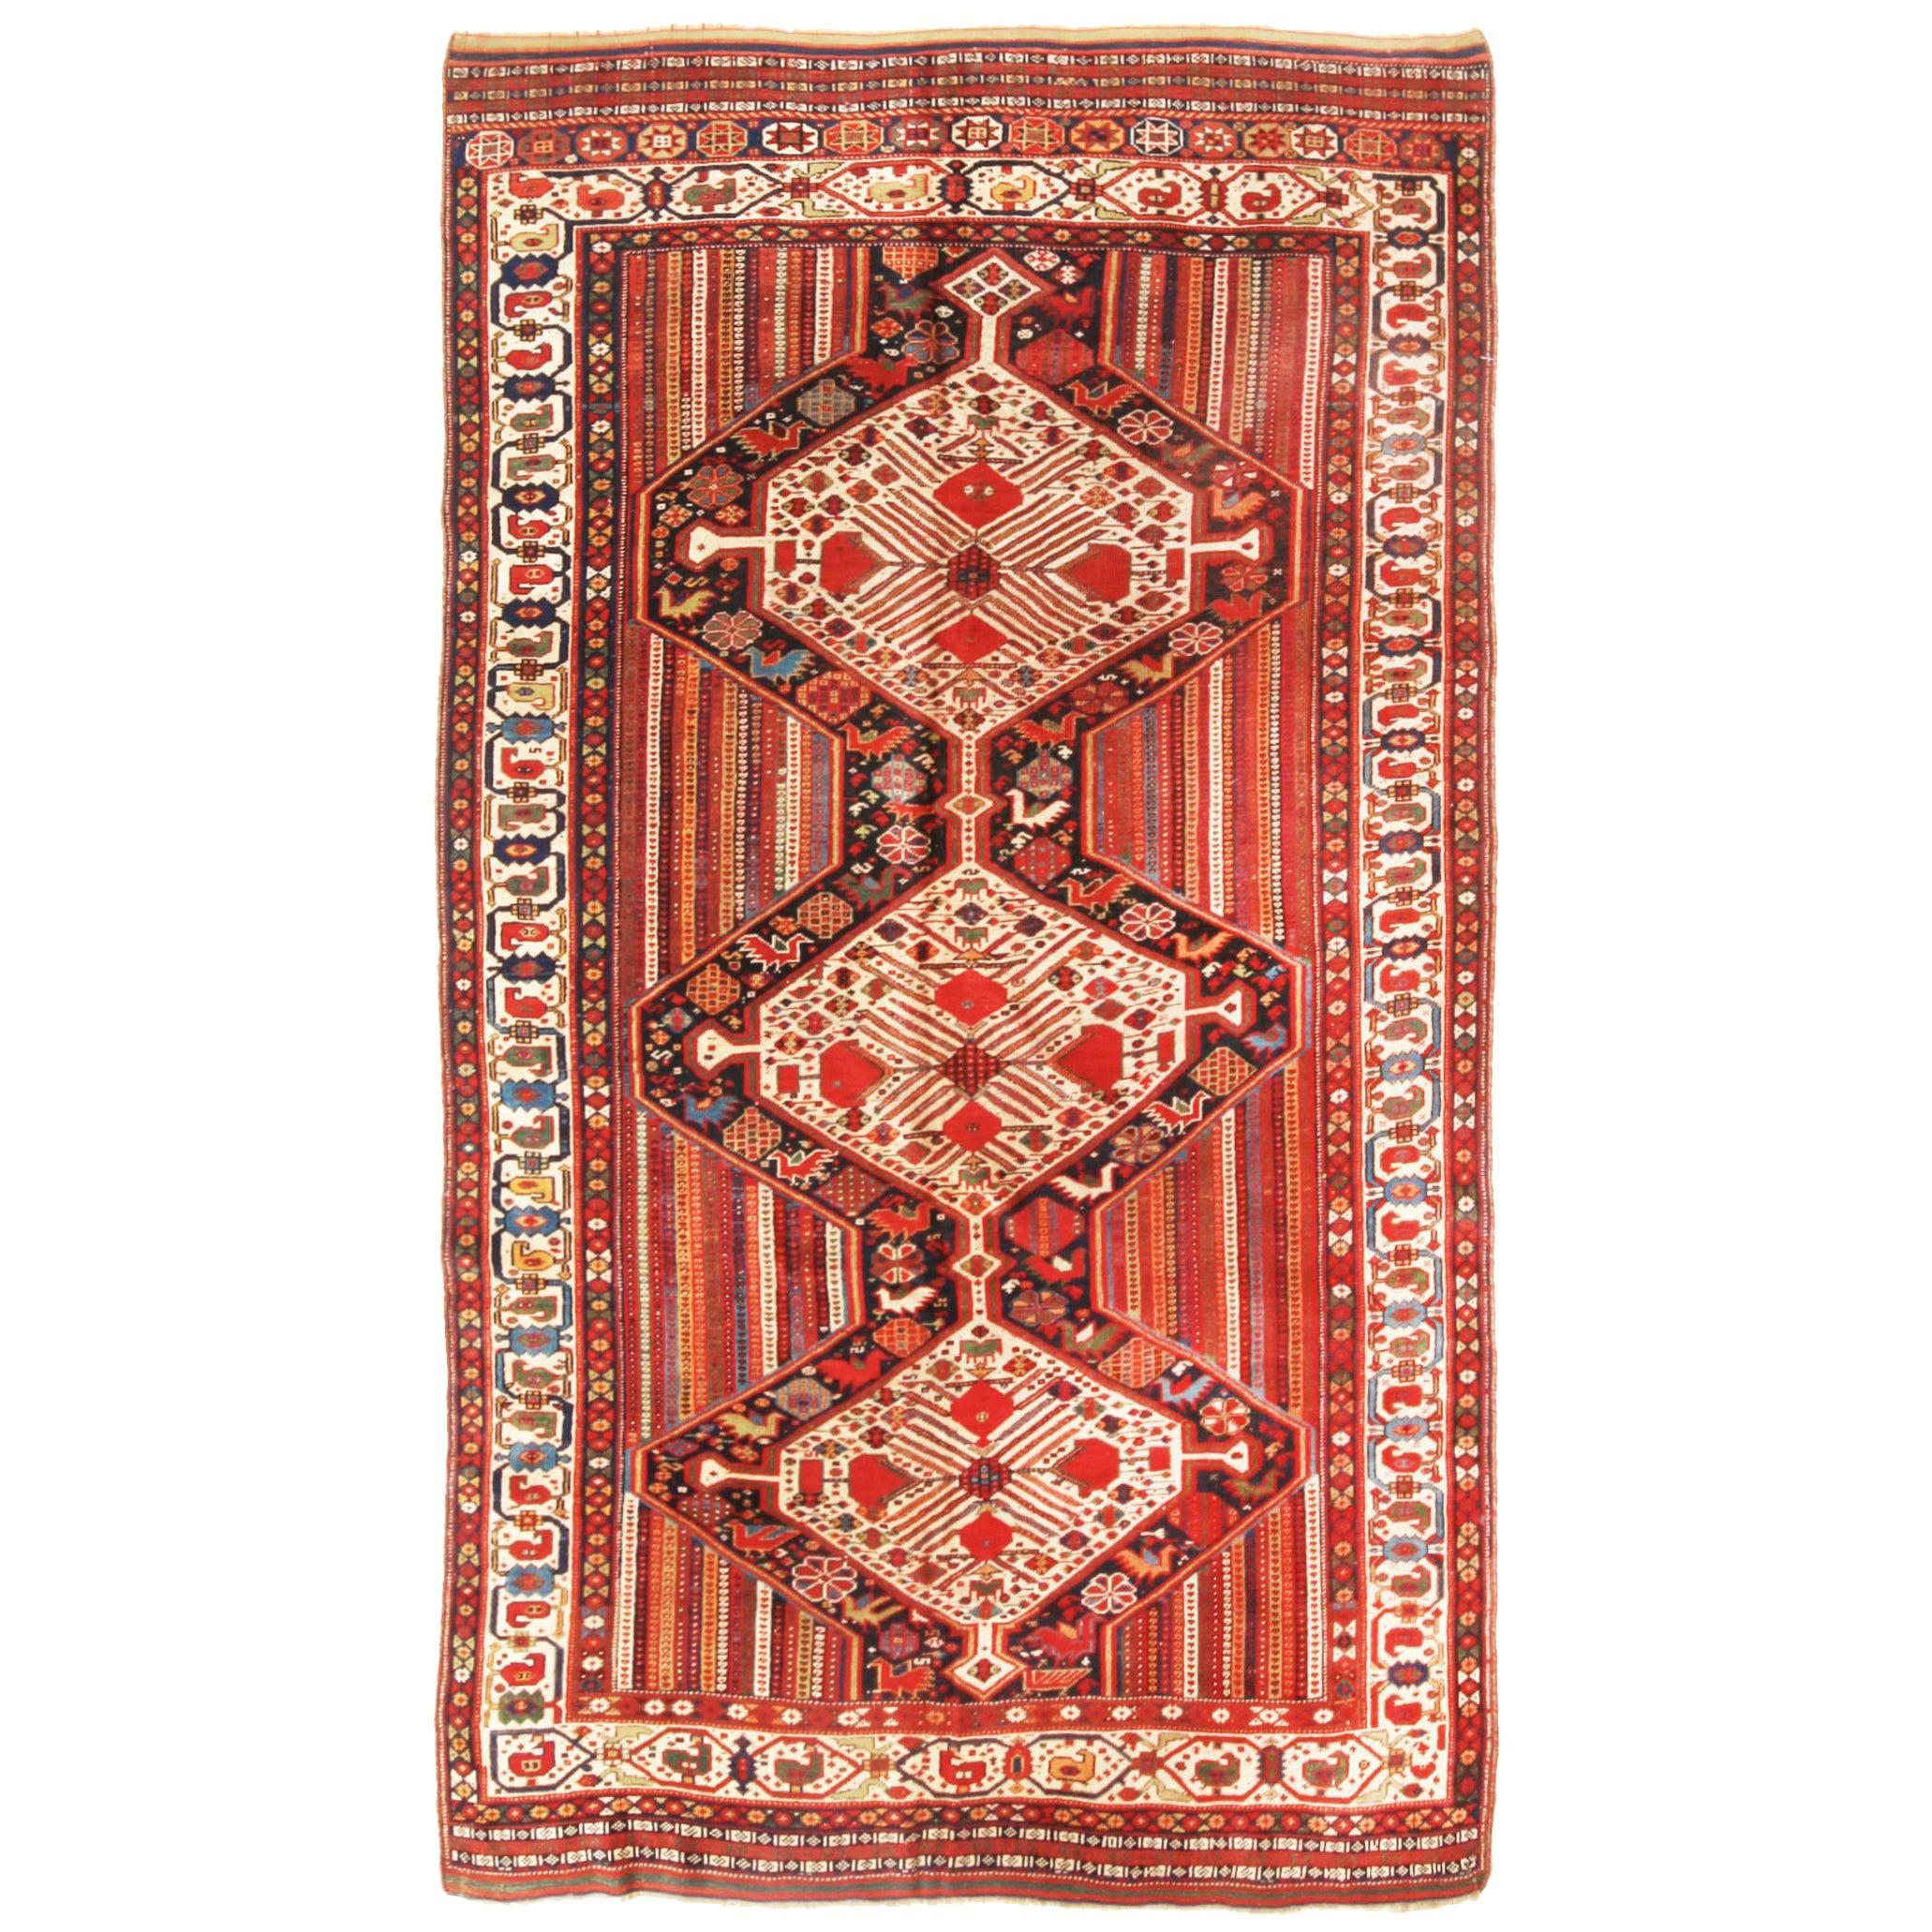 Antique Qashqai Transitional Red and Beige Wool Persian Rug